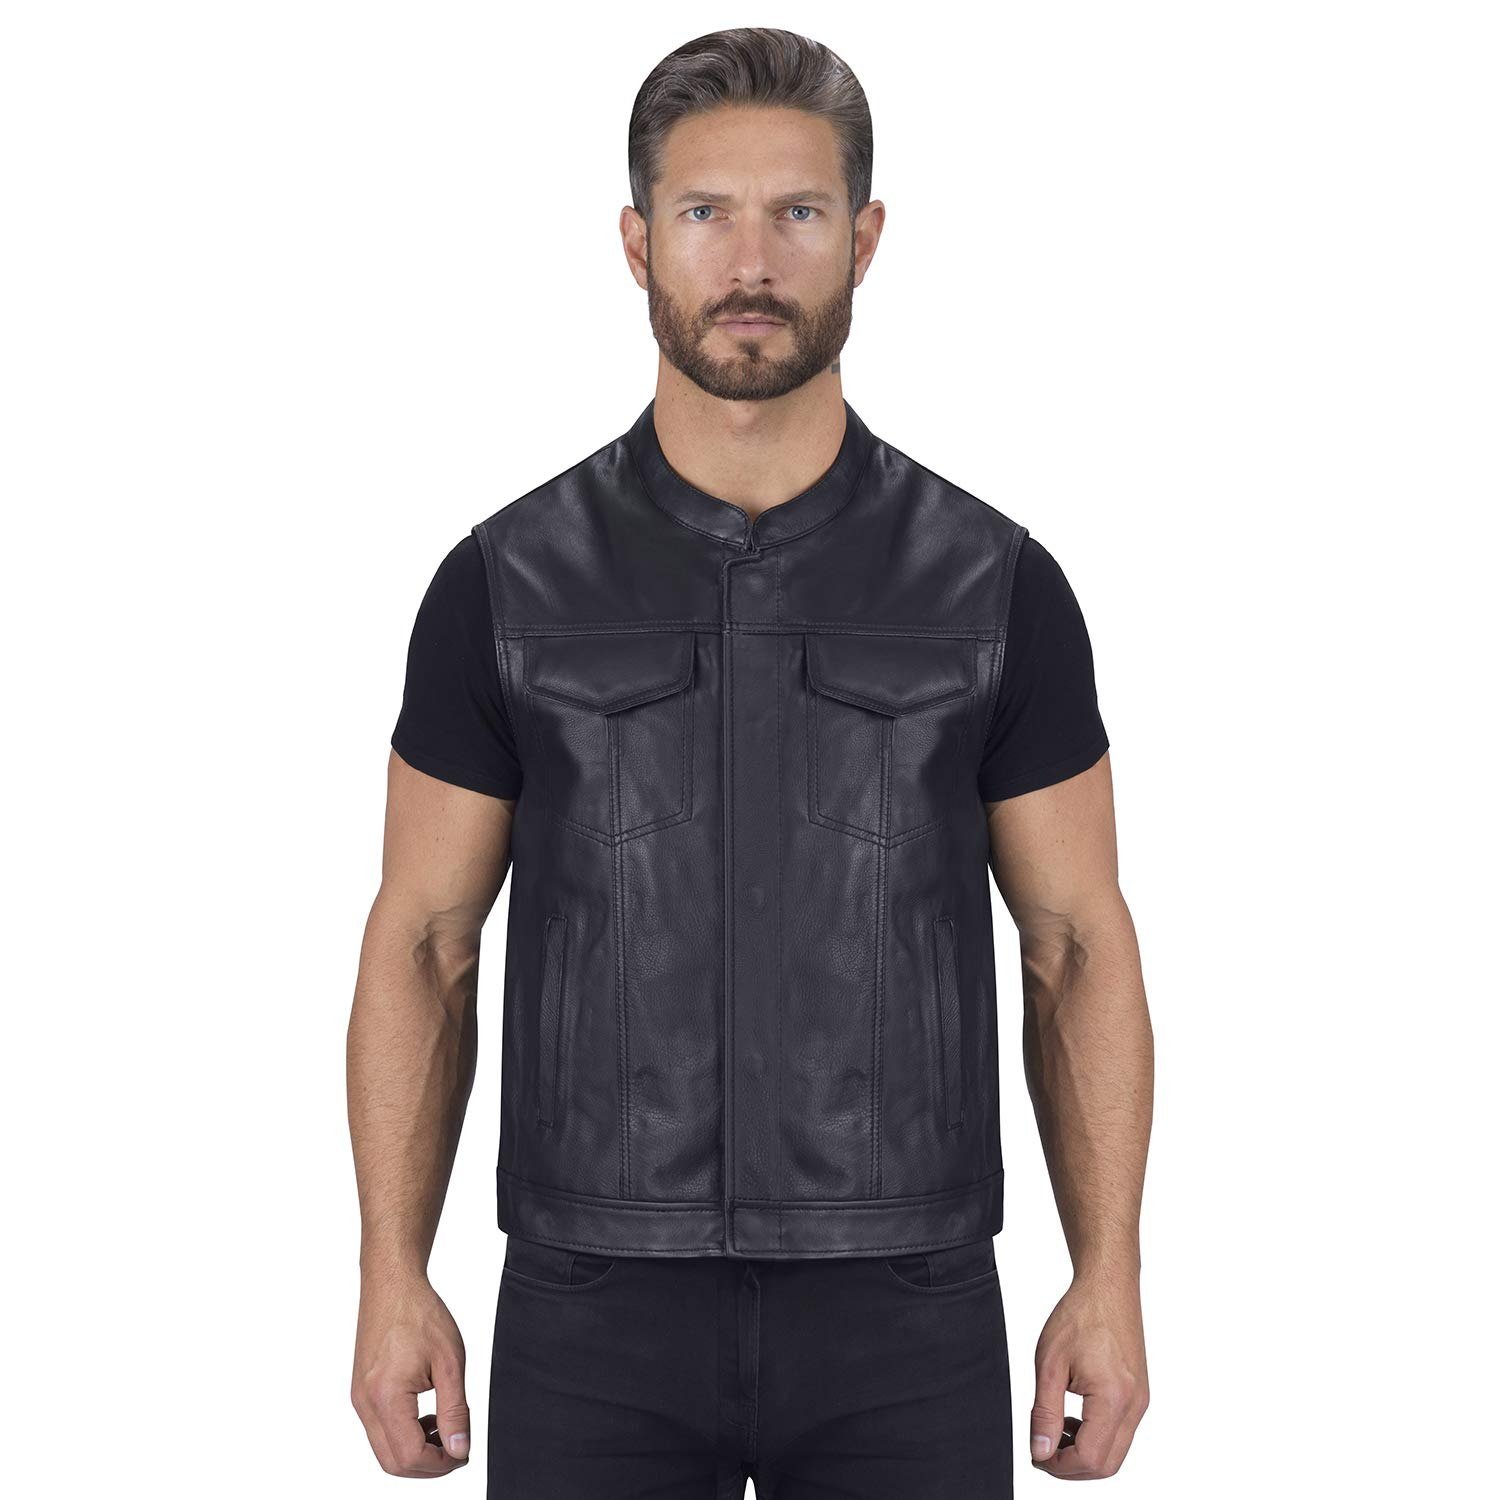 Viking Cycle Gardar Motorcycle Leather Vest for Men (X-Small) Black by Viking Cycle